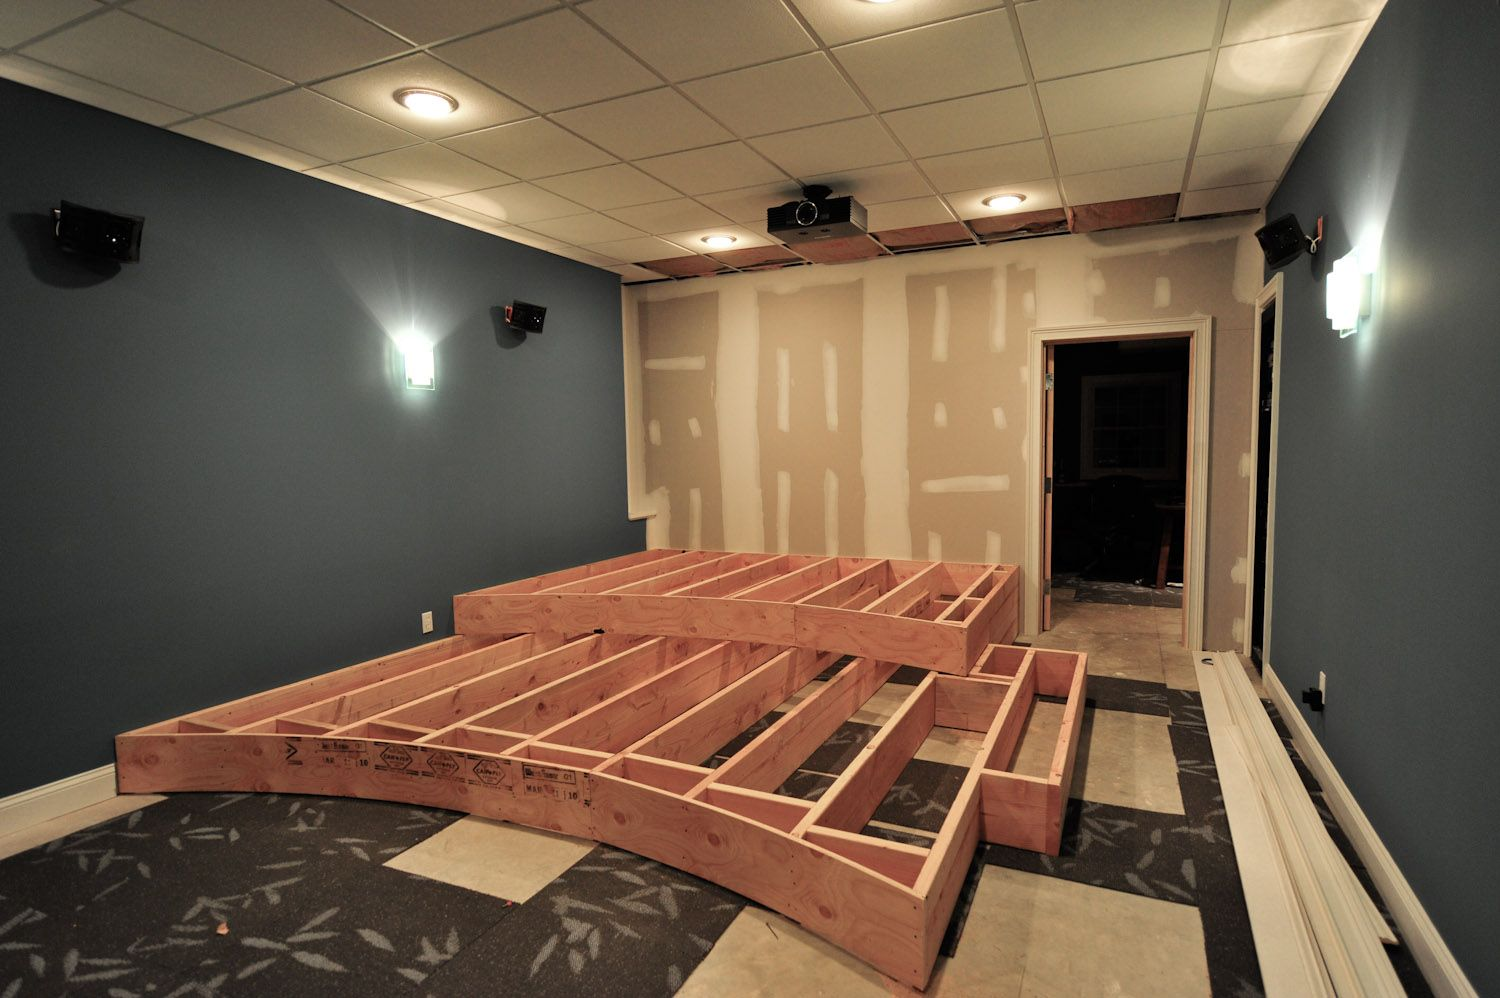 Home theater redux home theater the riser theater room pinterest basements room and - Diy home theater design idea ...